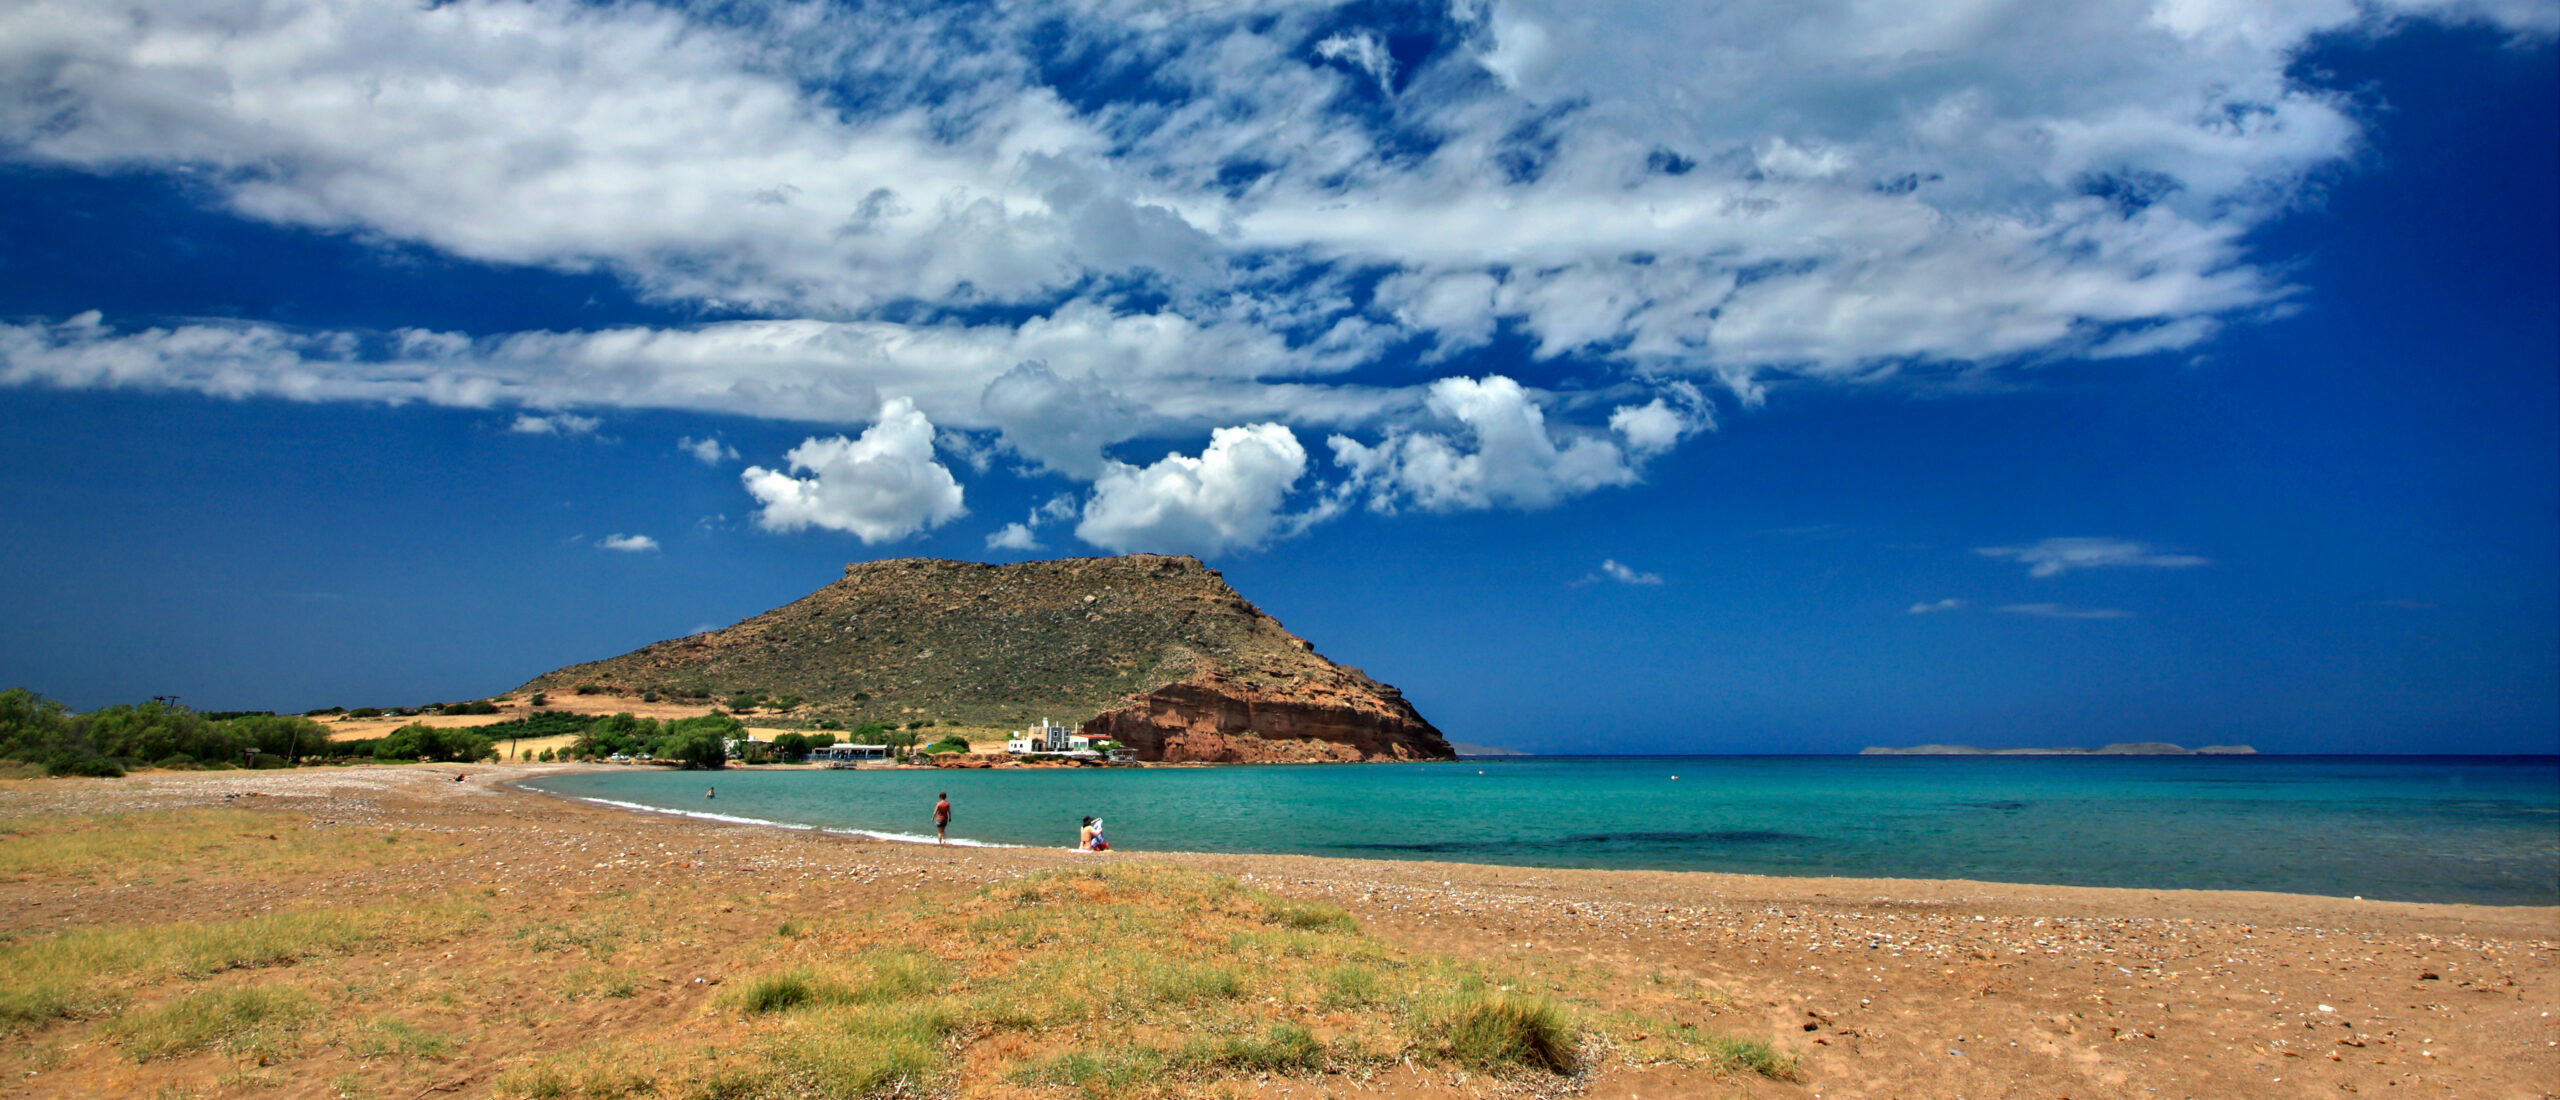 Chiona and Grandes: An exotic and unexplored corner of Greece